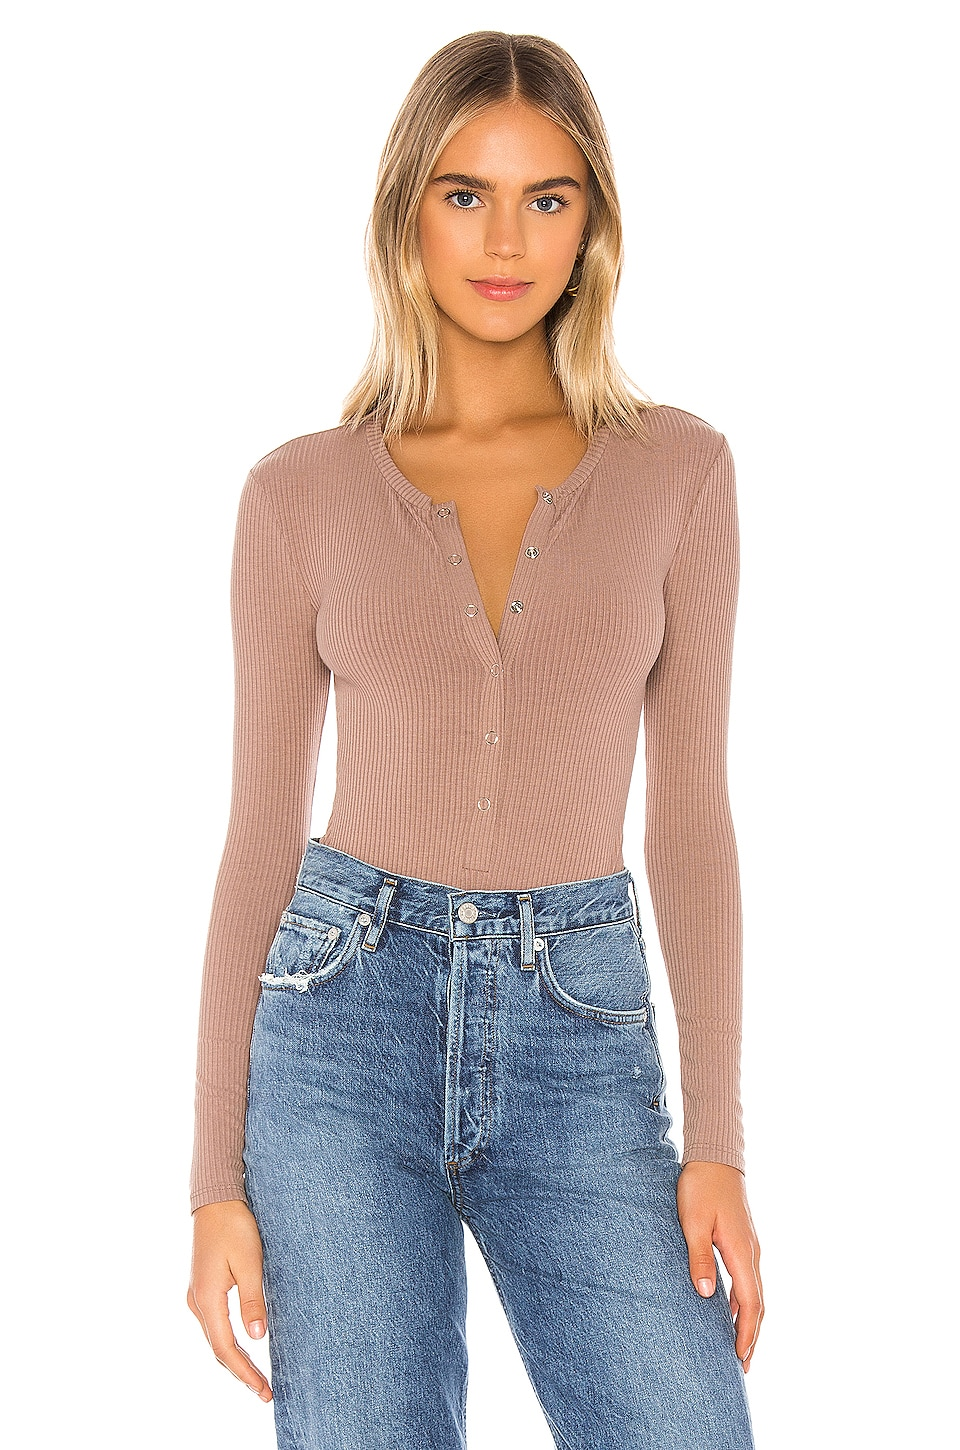 Privacy Please Peoria Bodysuit in Taupe